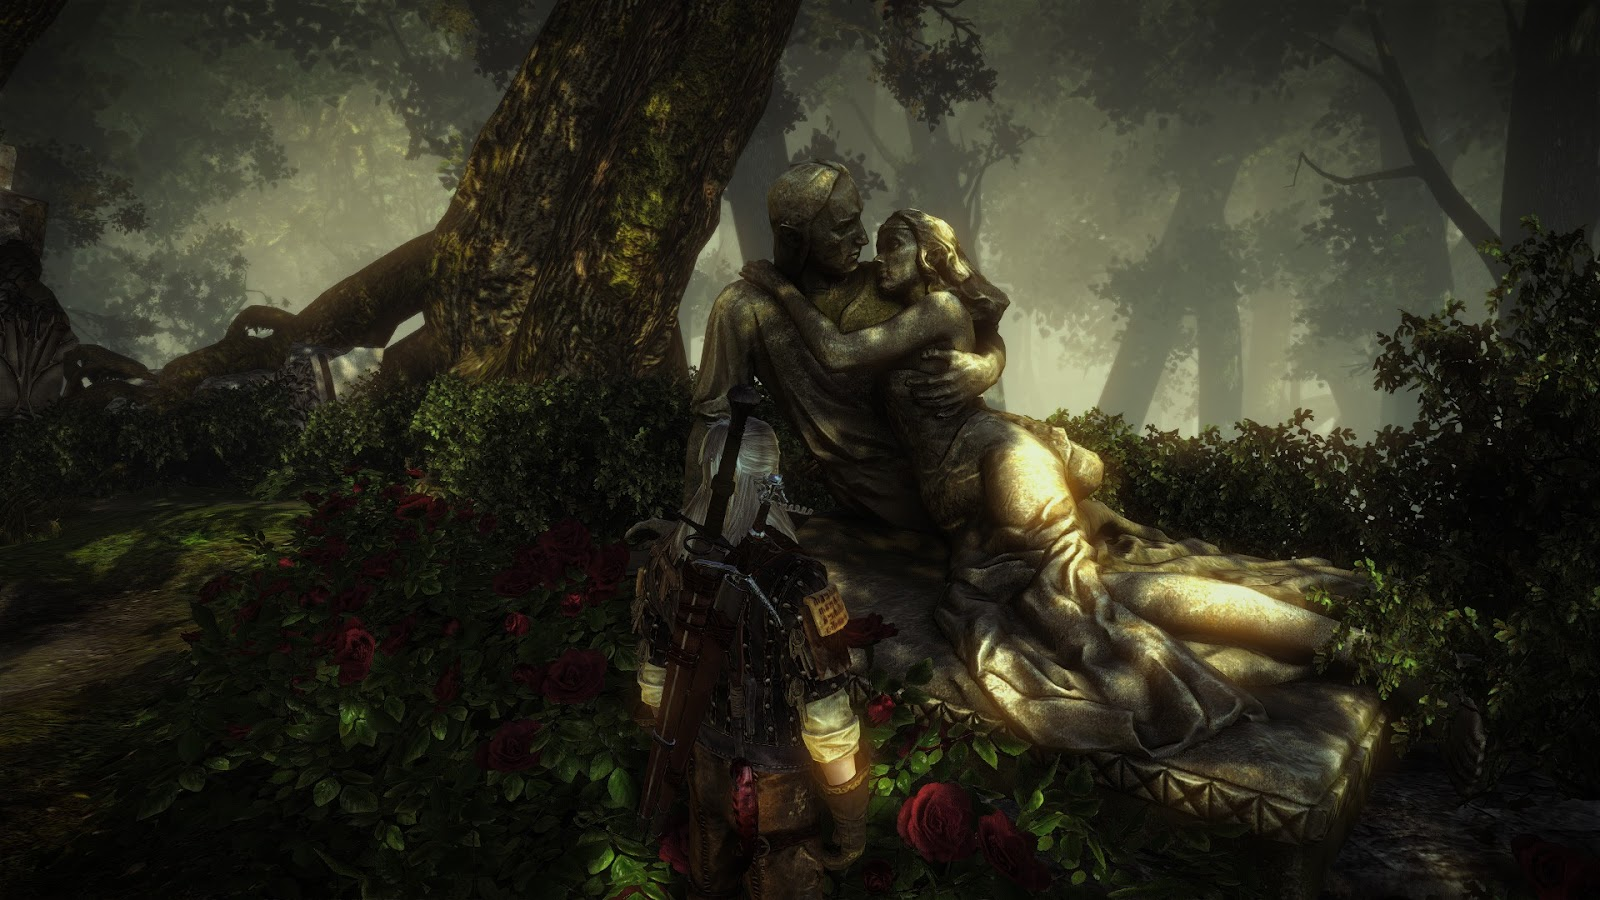 Anime Witch Girl Wallpaper The Nocturnal Rambler The Witcher 2 Screenshots